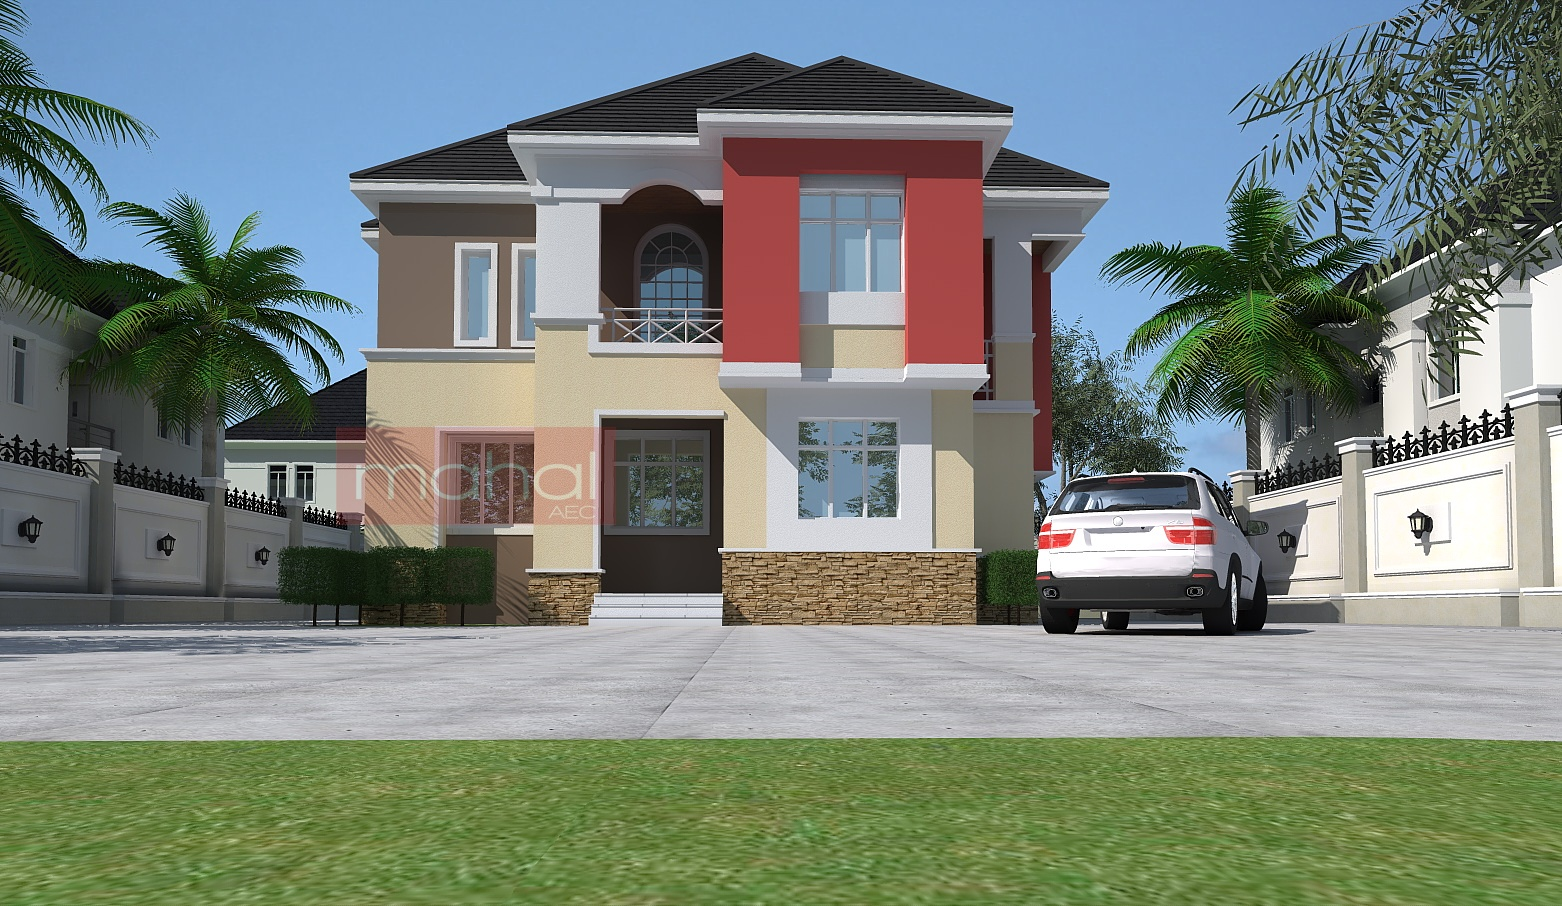 Contemporary nigerian residential architecture nwoko for Nigerian architectural designs